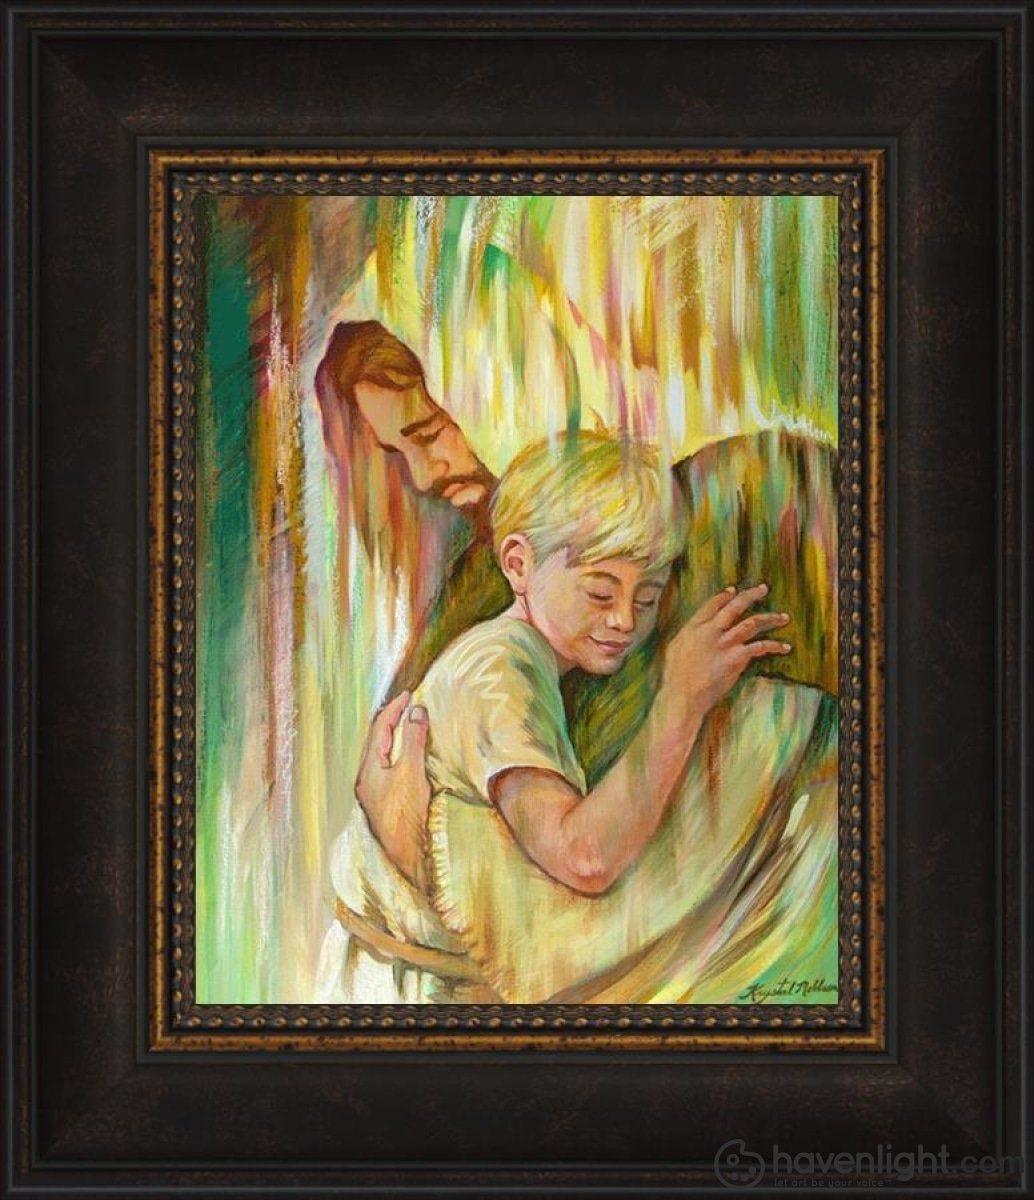 He Hears Me Open Edition Print / 8 X 10 Frame W 14 1/2 12 Art